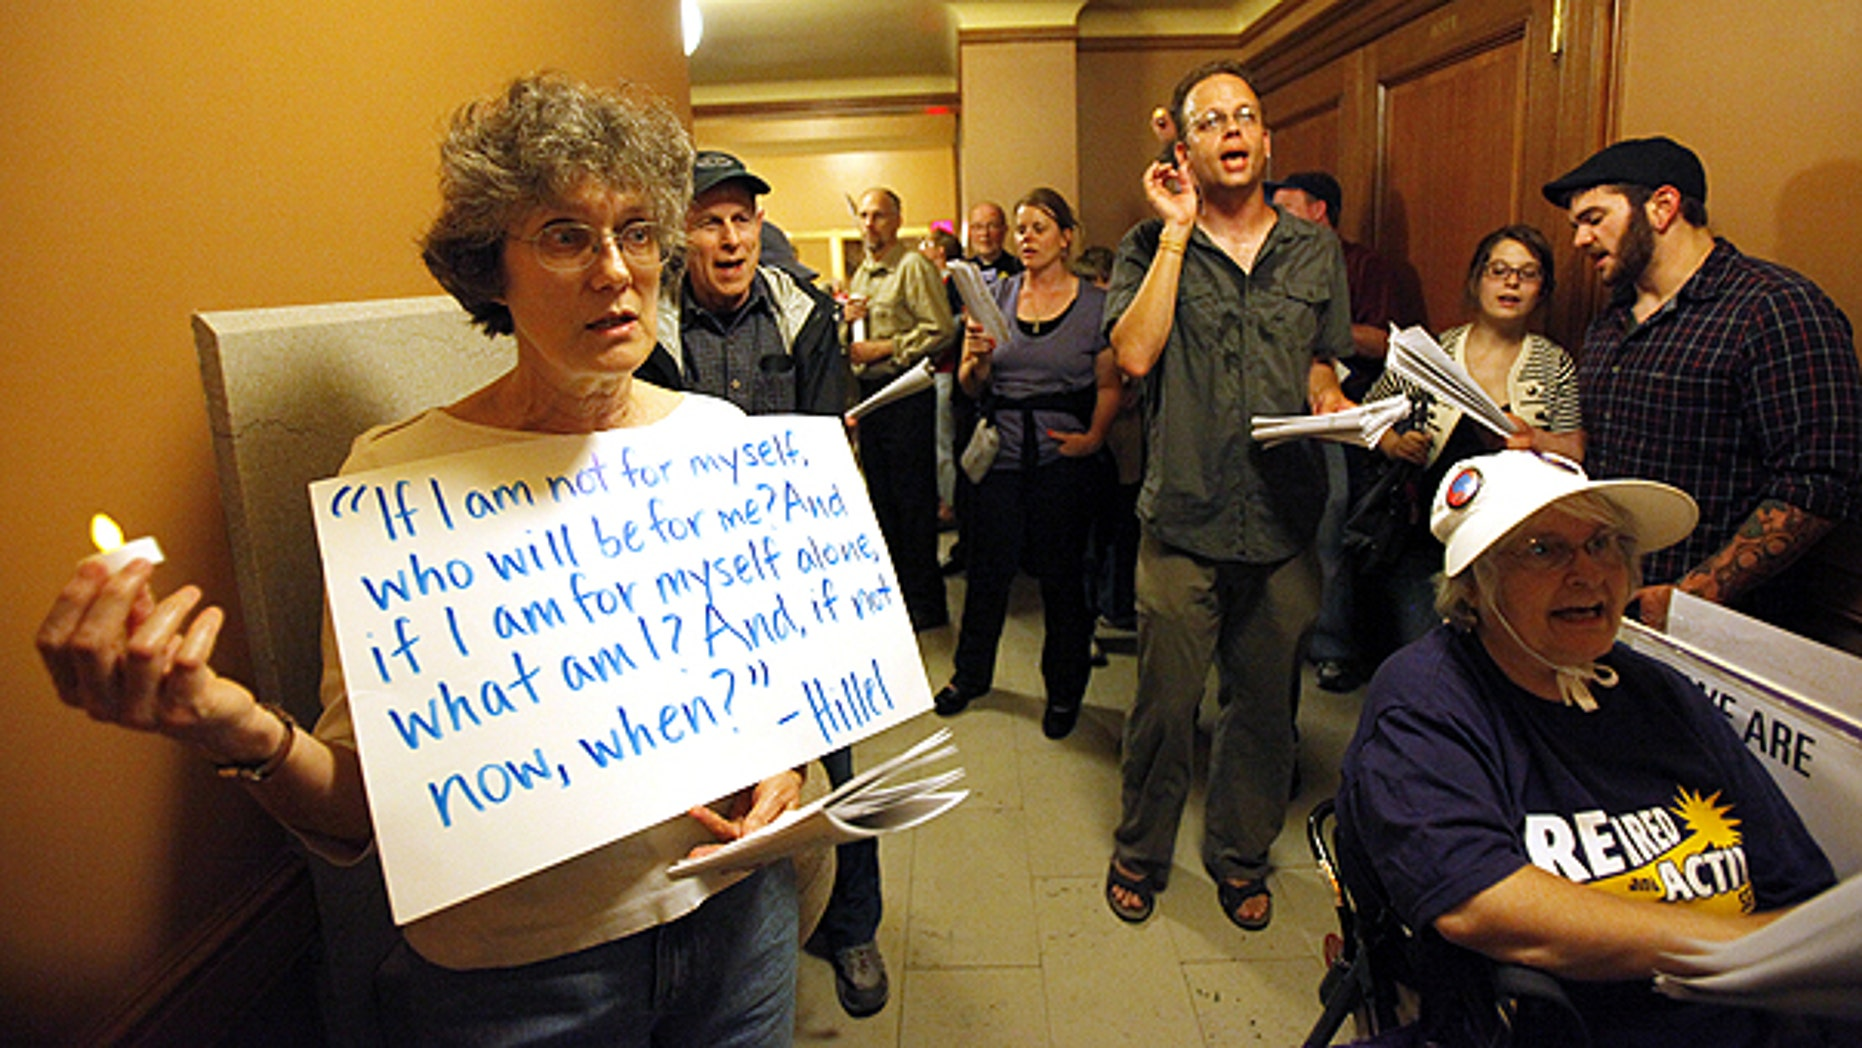 June 2: Protesters wait to be let into a meeting of the Joint Committee on Finance at the state Capitol in Madison, Wis.